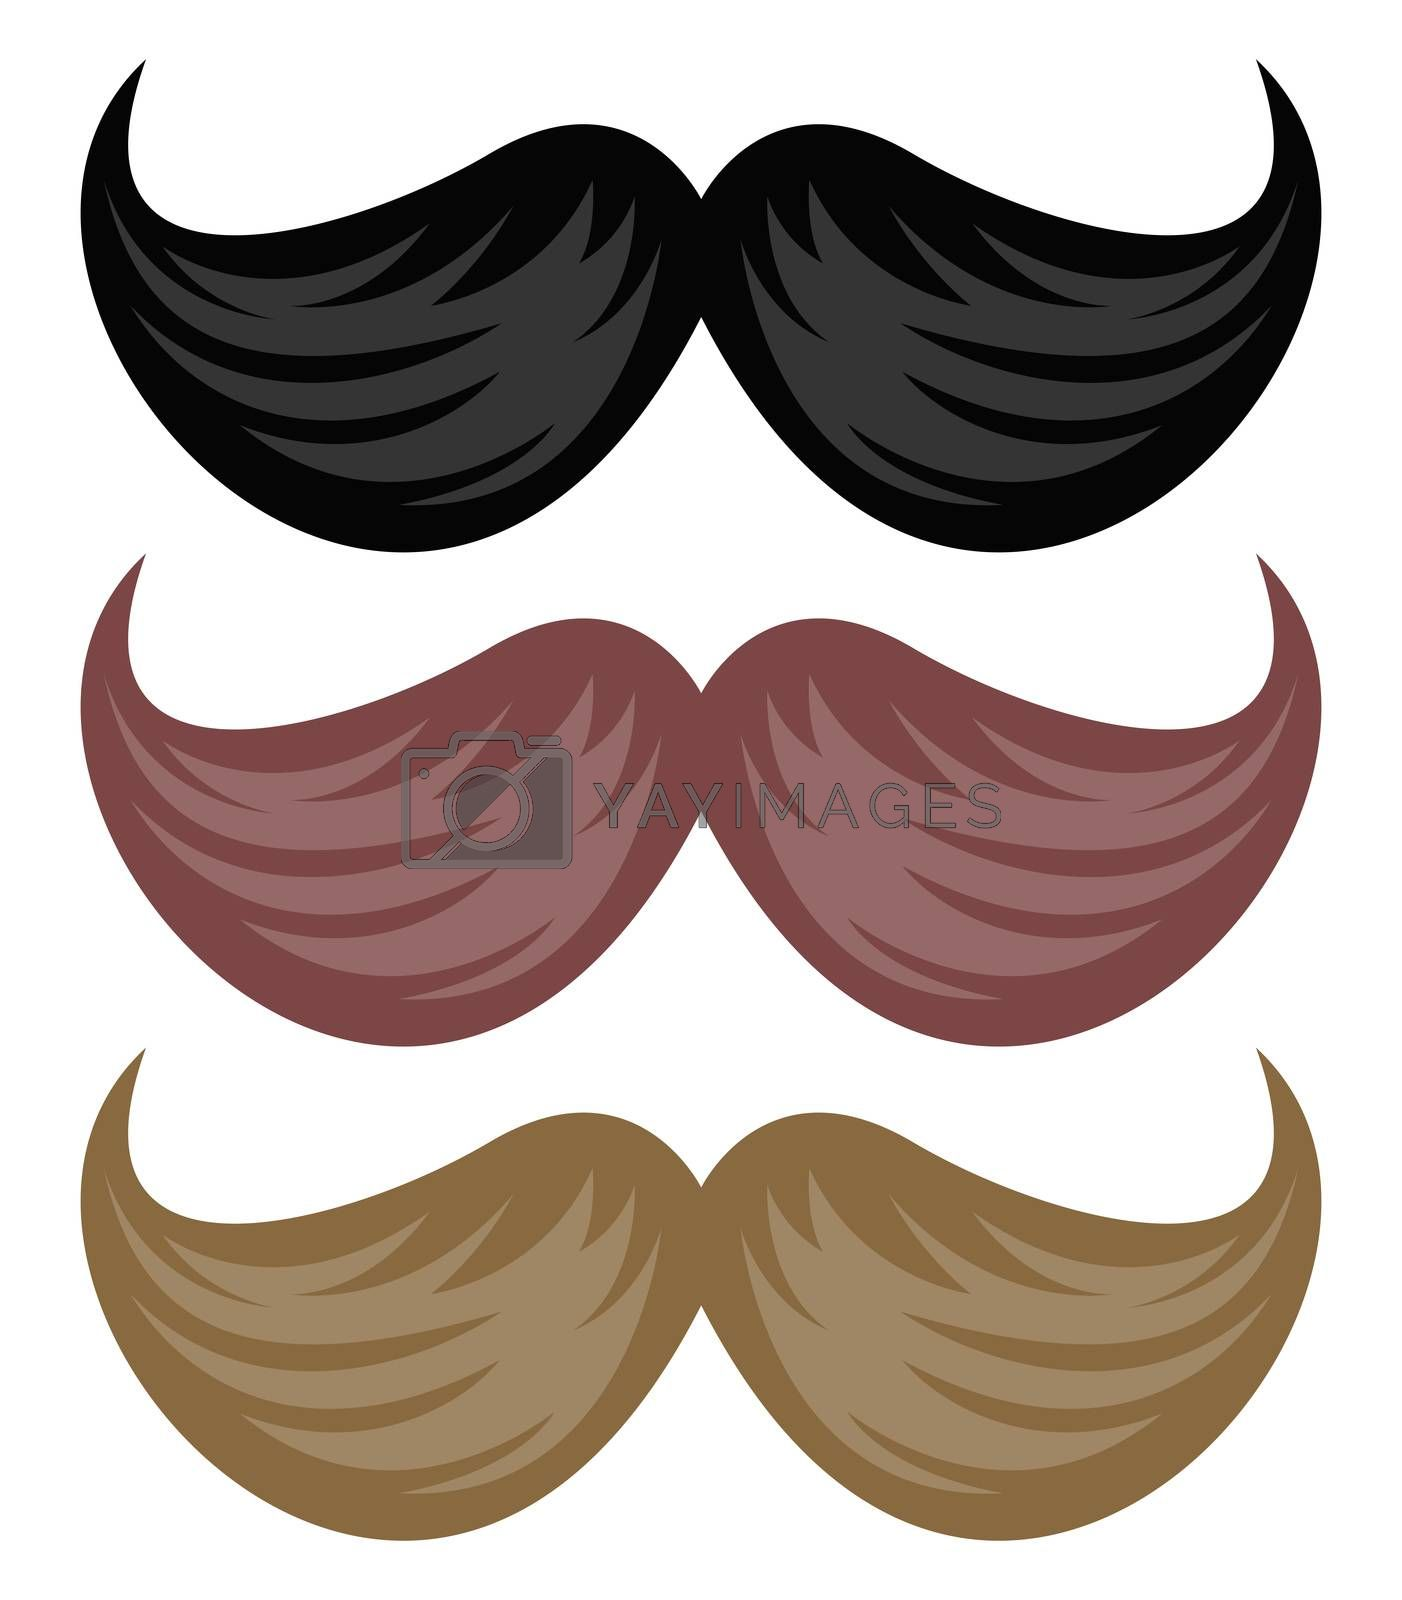 Mustaches, illustration, vector on white background